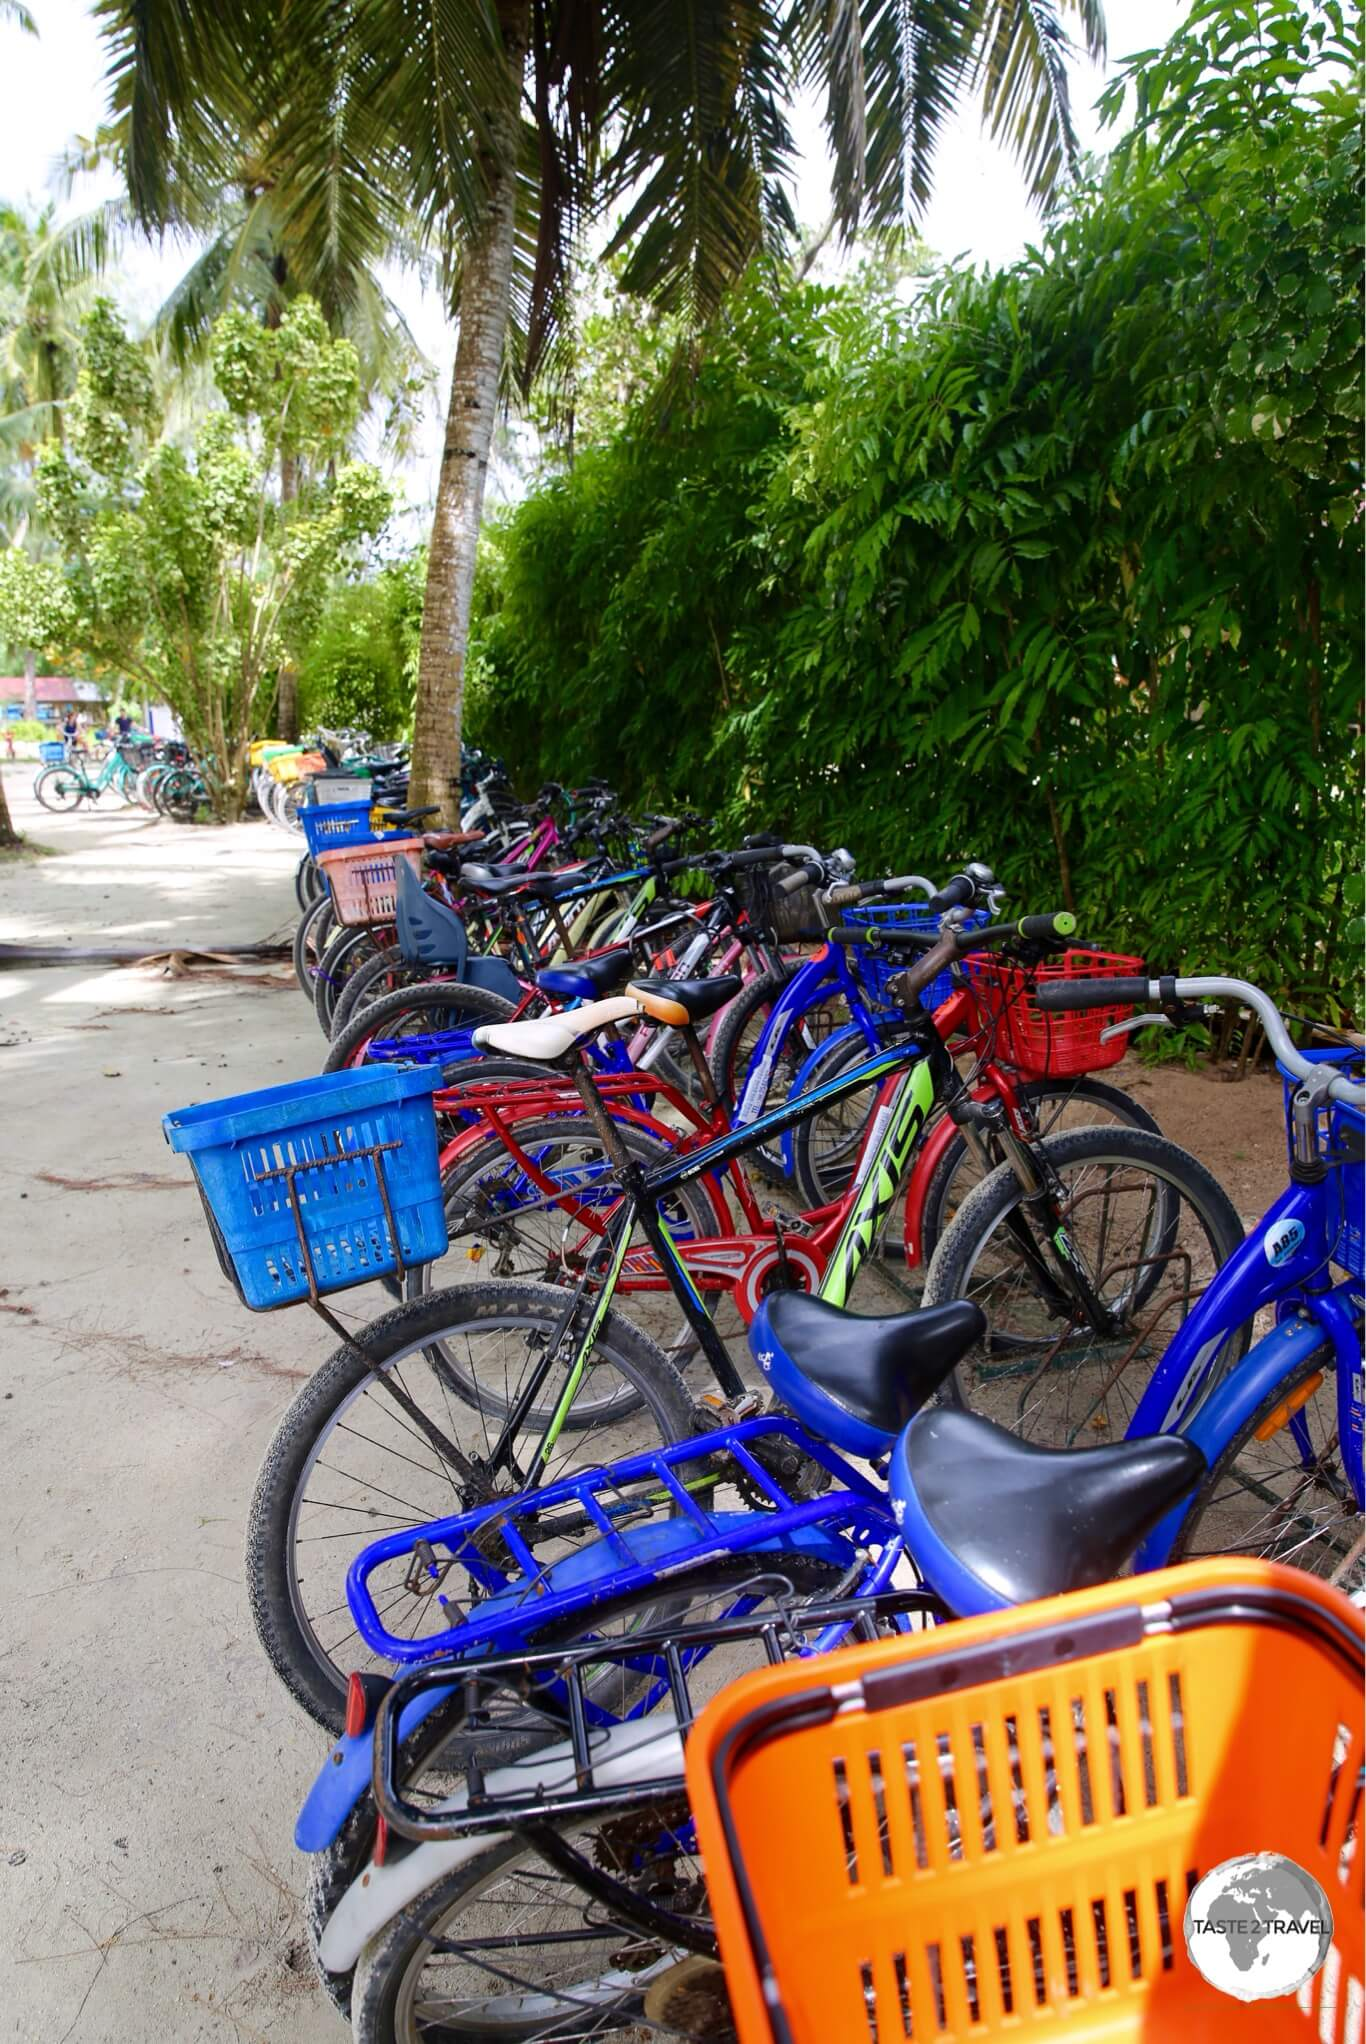 A small section of the busy bicycle parking area at Anse Source d'Argent.